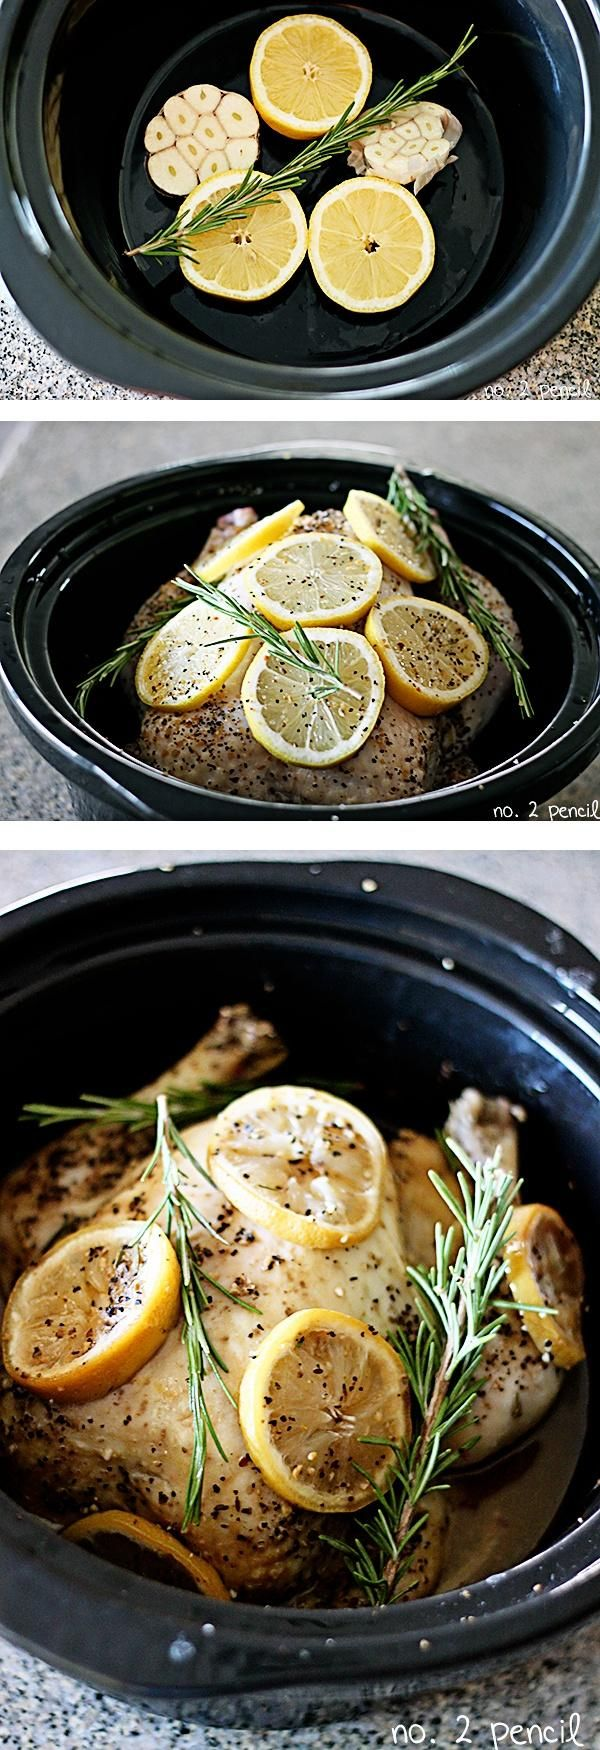 Slow Cooker Lemon Garlic Chicken looks delicious and pretty!